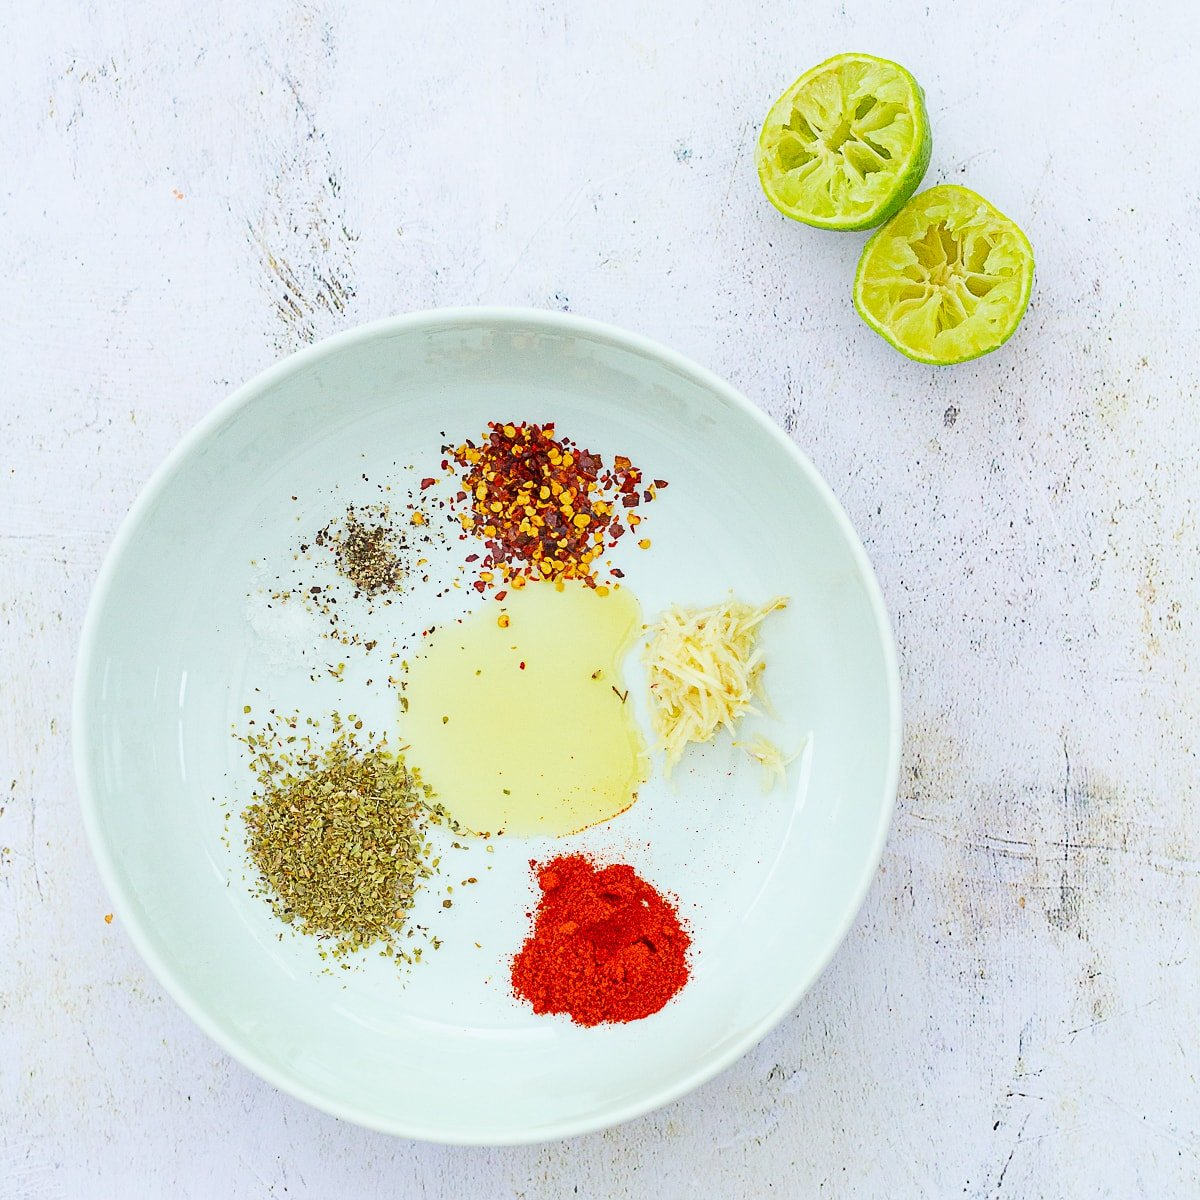 Ingredient for Homemade Peri Peri Marinade